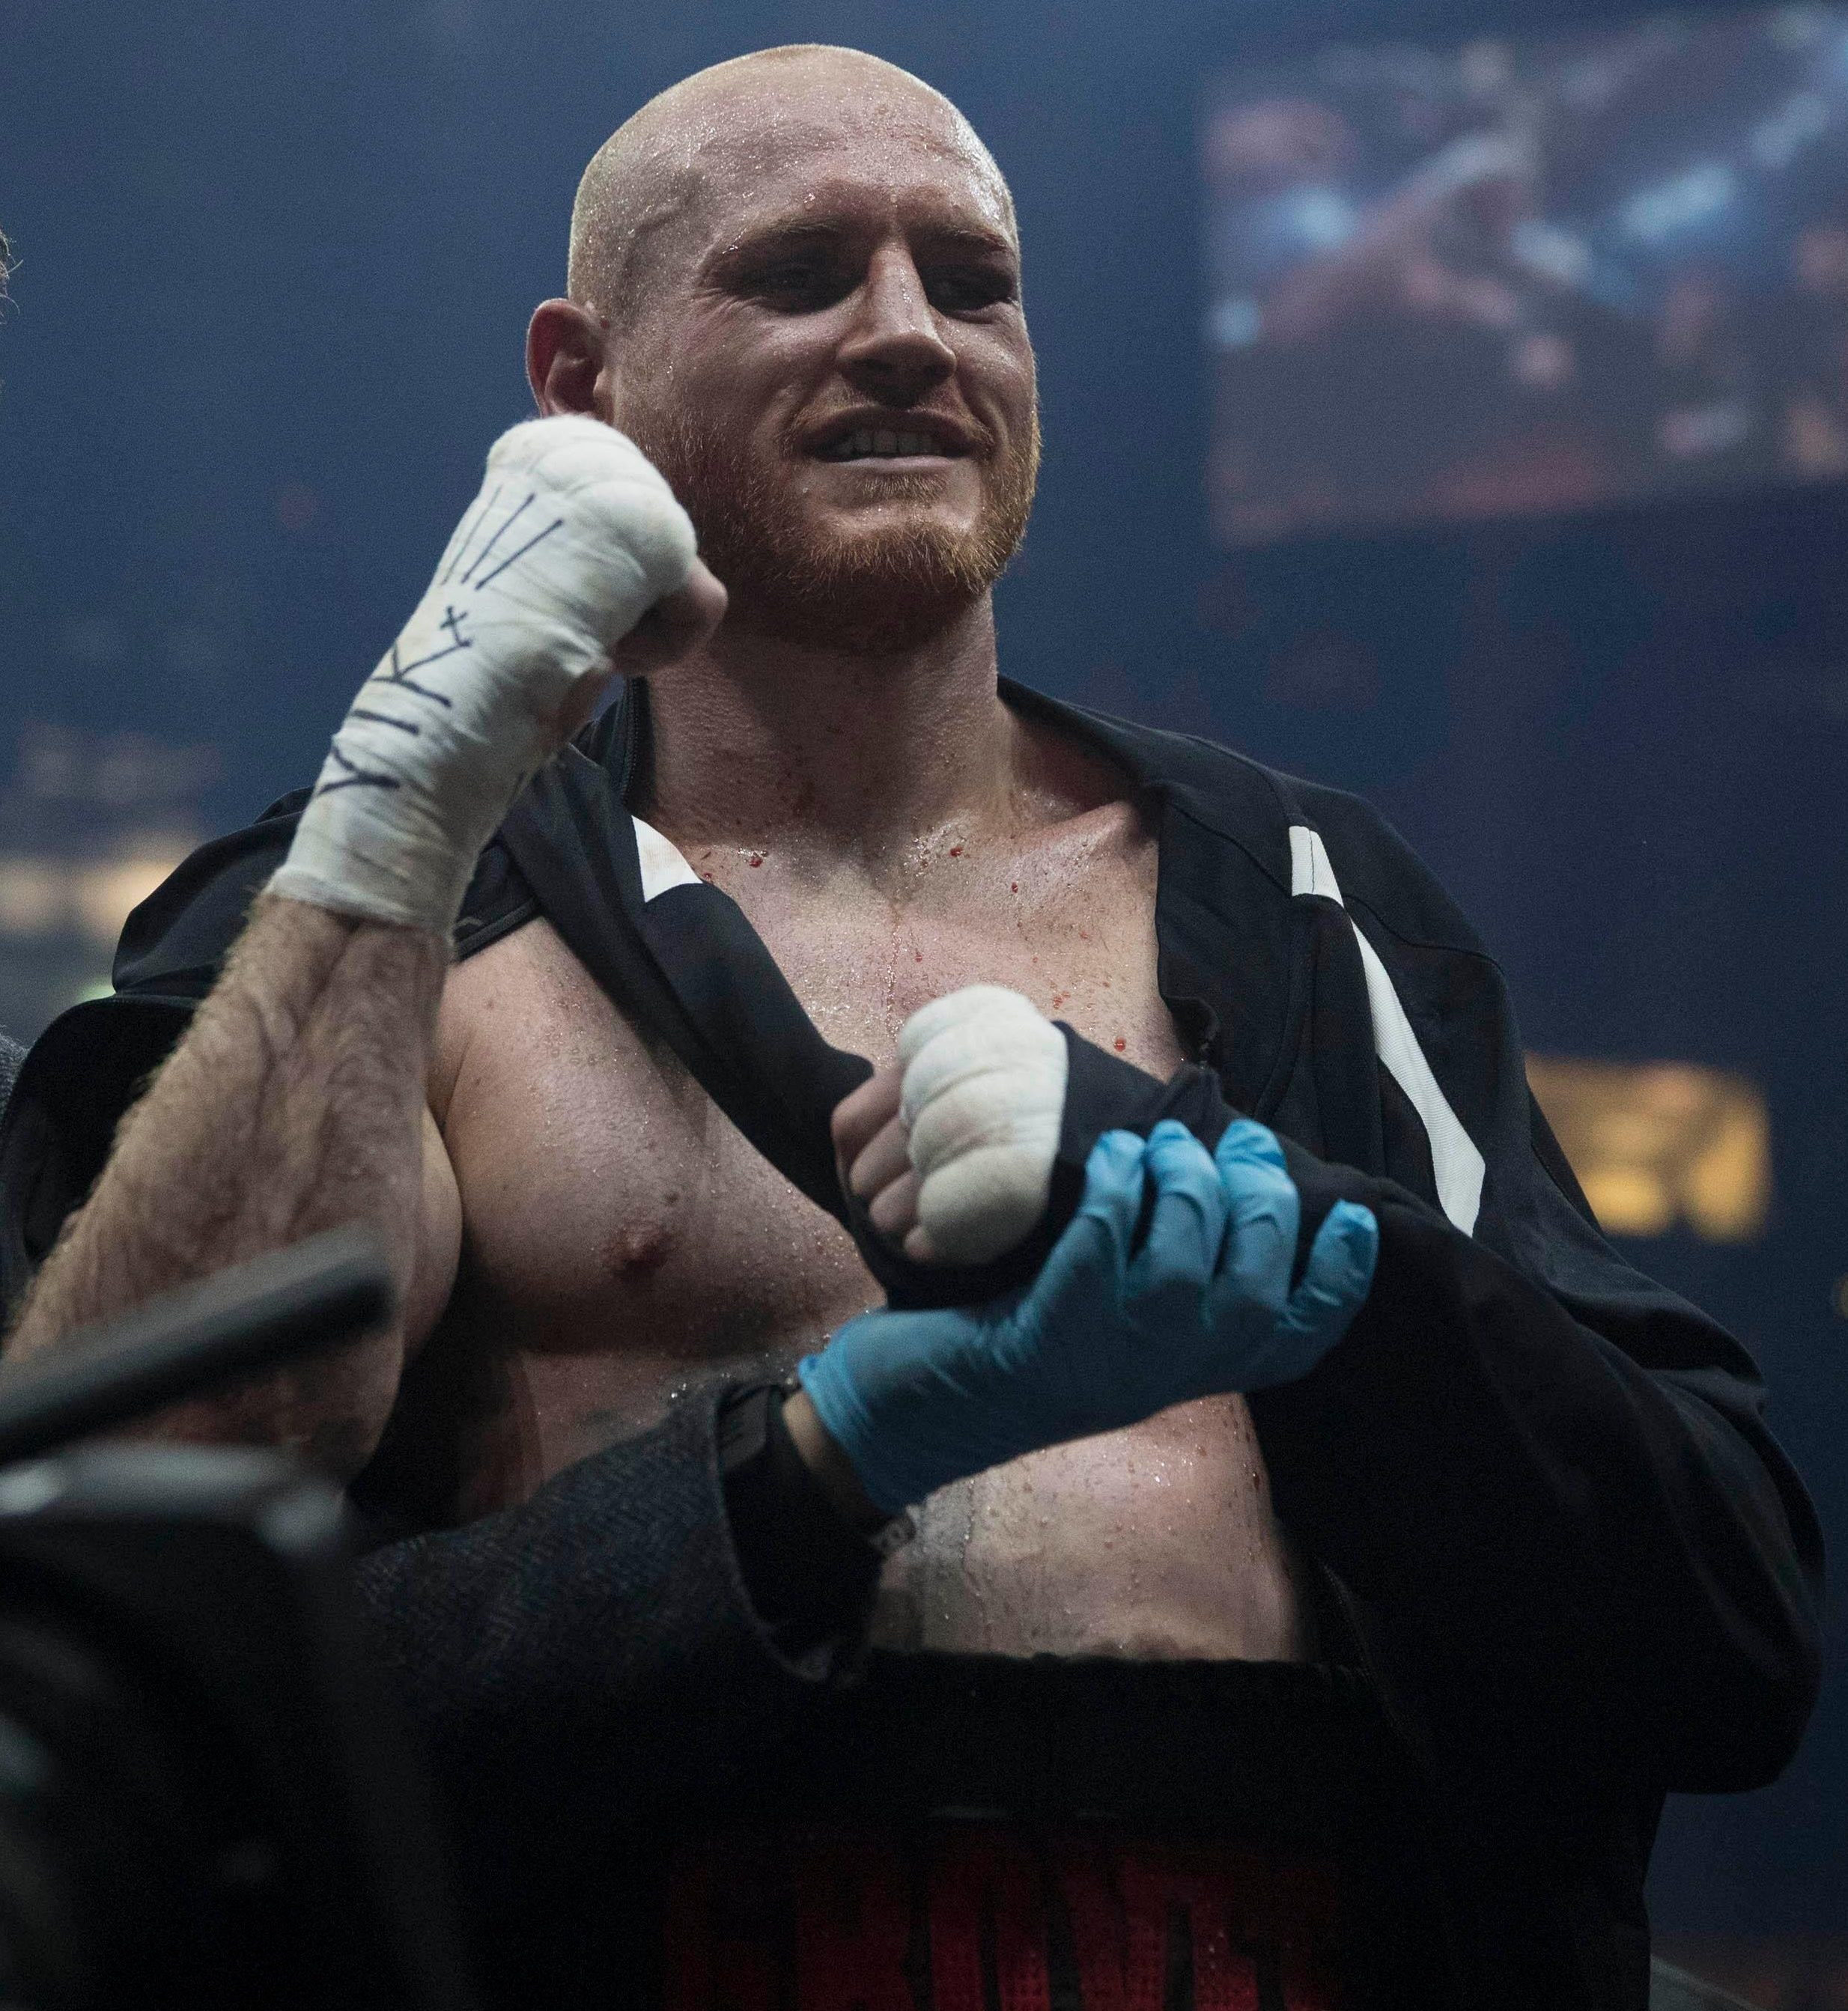 George Groves dislocted his shoulder in the final round of his war against Chris Eubank Jr